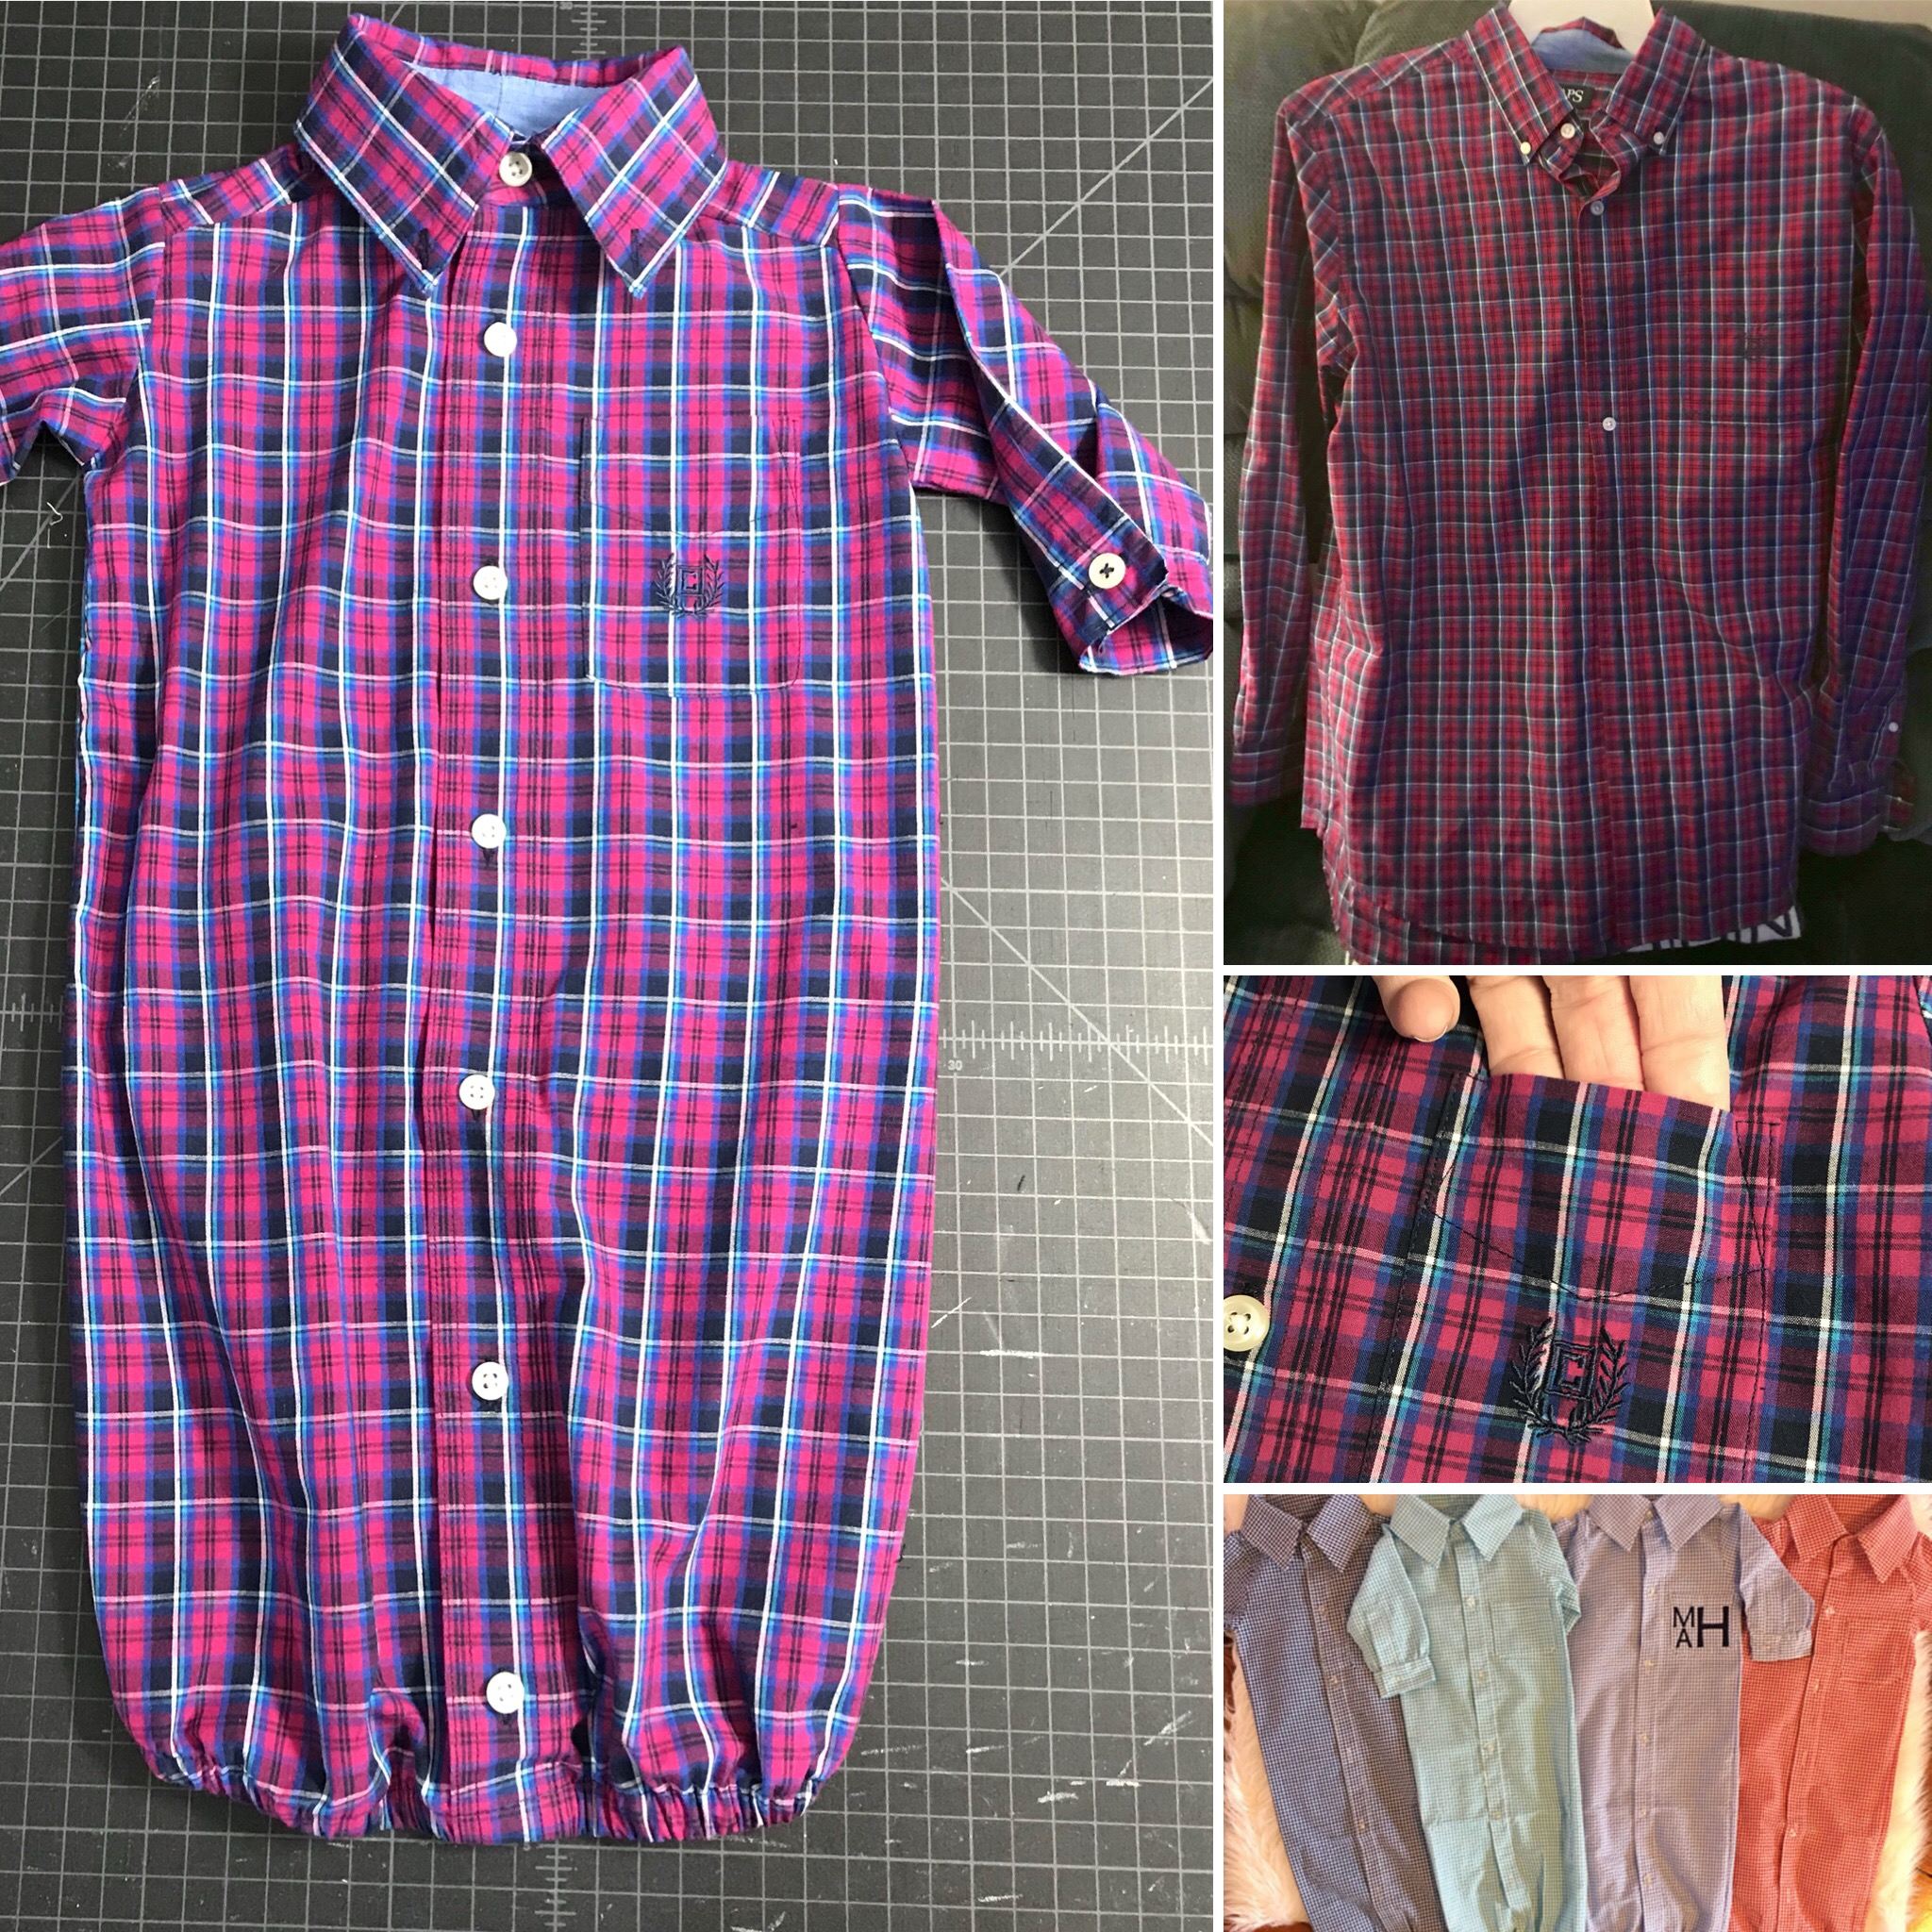 mens button ups into onesies